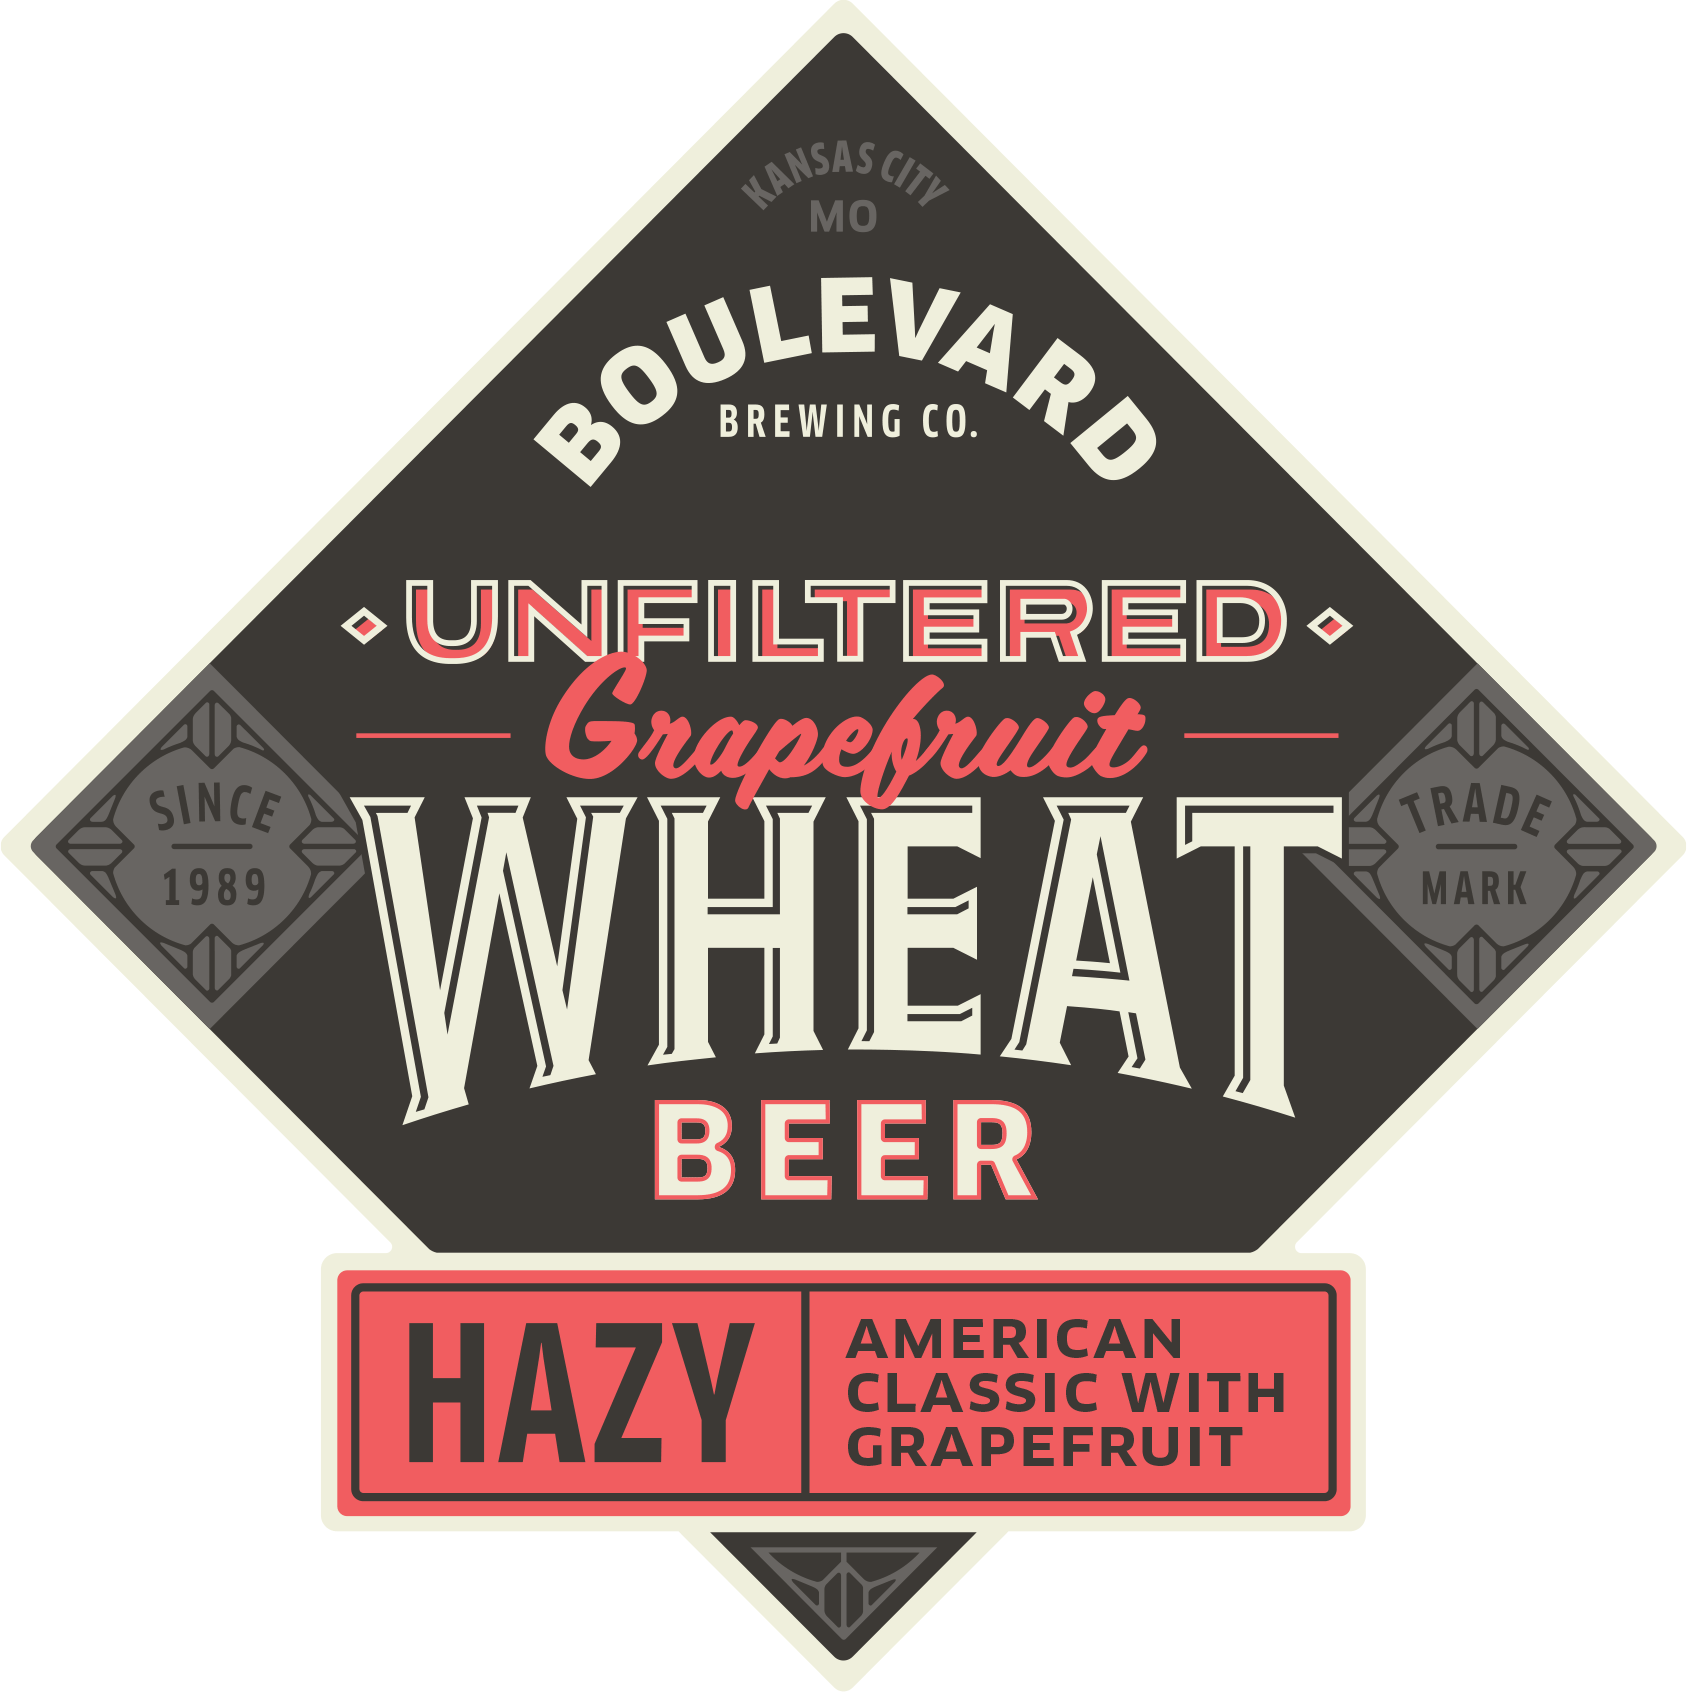 Unfiltered Grapefruit Wheat